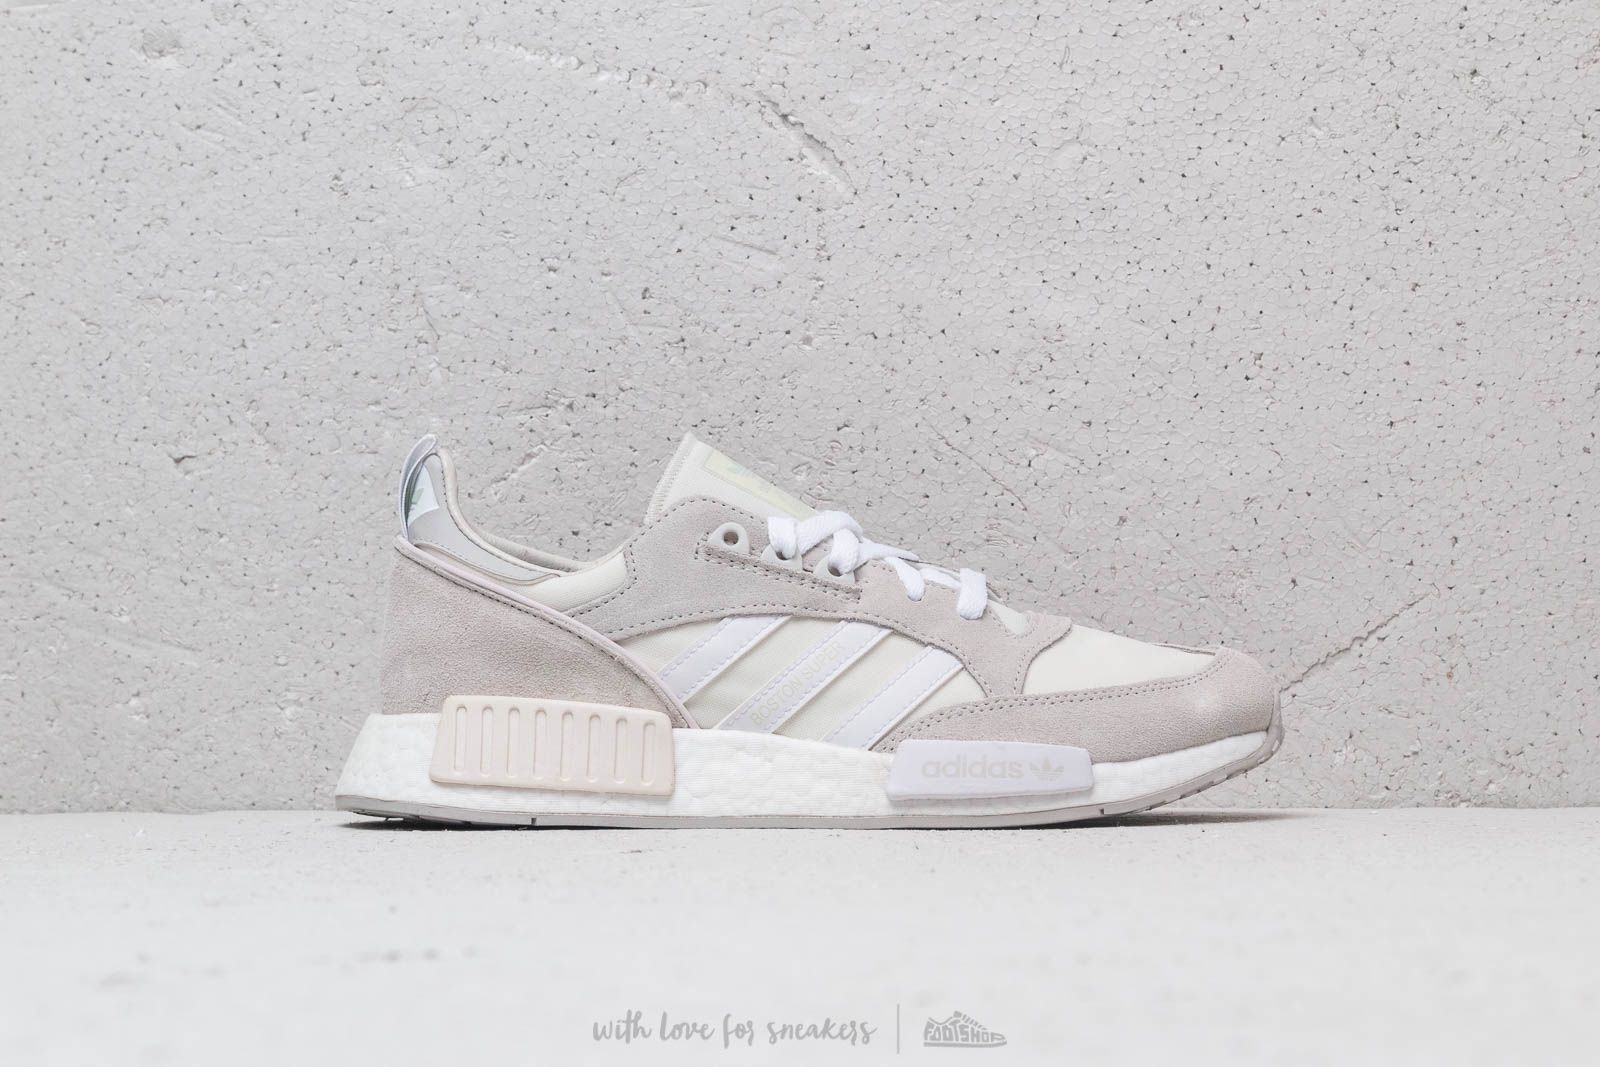 adidas Boston Super x R1 Cloud White  Ftw White  Grey One at a great 8c8668a2a